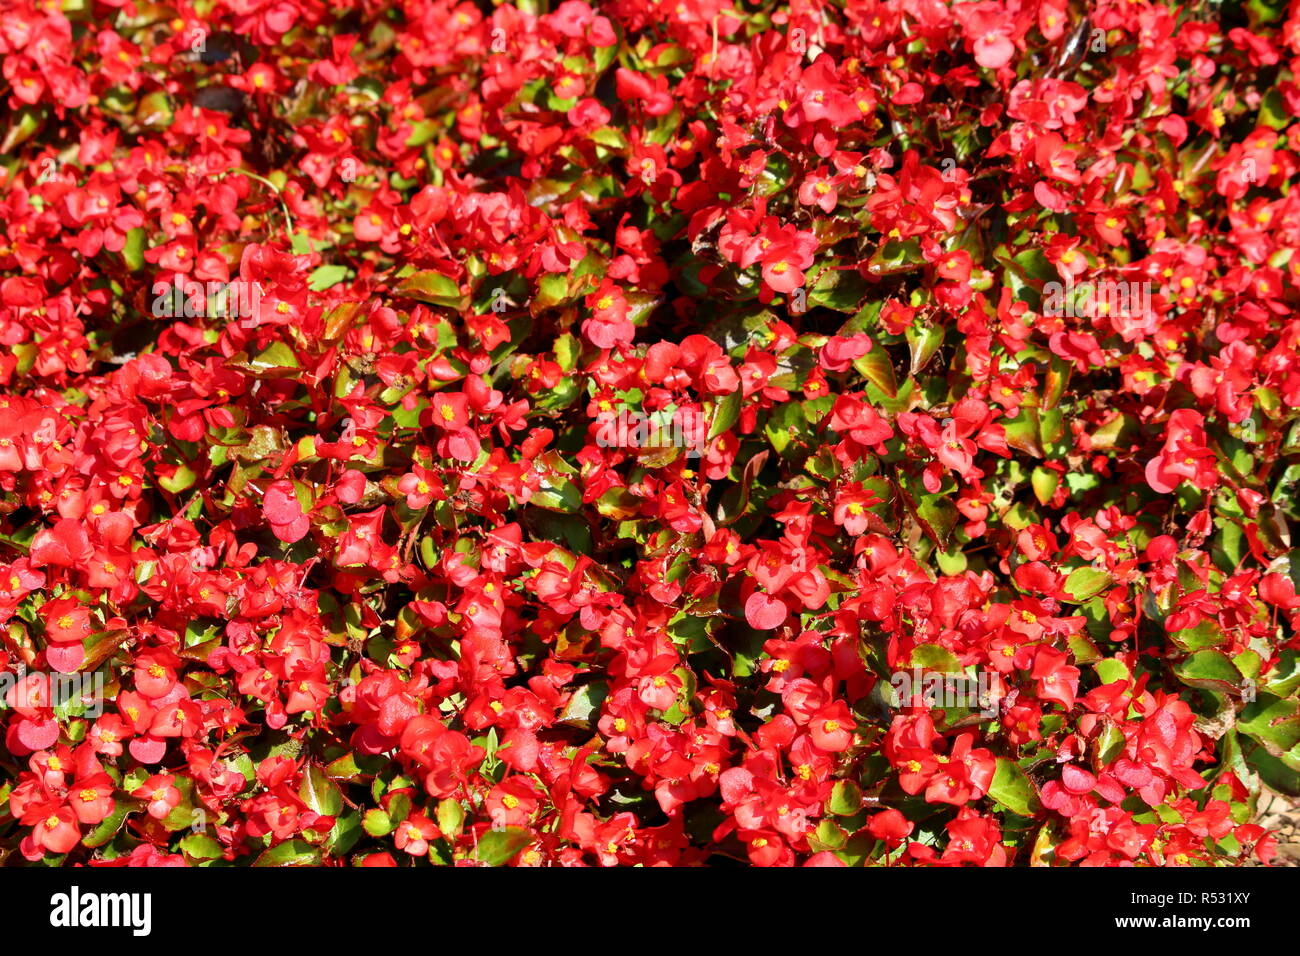 Begonia plants texture background with green to reddish brown leaves and bright red flowers with yellow center growing in form of dense shrub - Stock Image